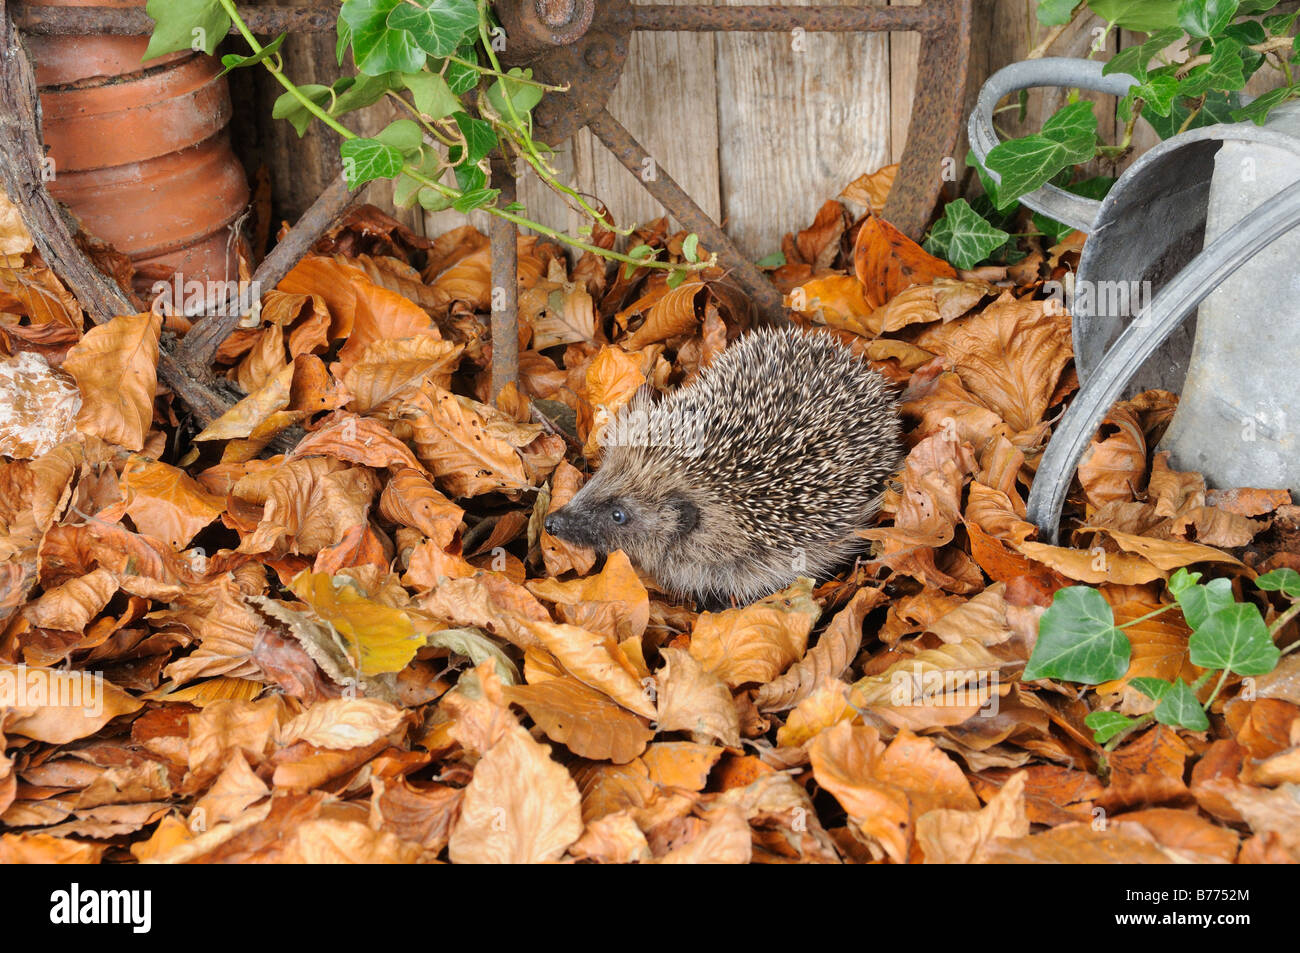 European Hedgehog erinaceus europaeus foraging amongst autumn leaves in a rustic garden setting Norfolk UK October - Stock Image